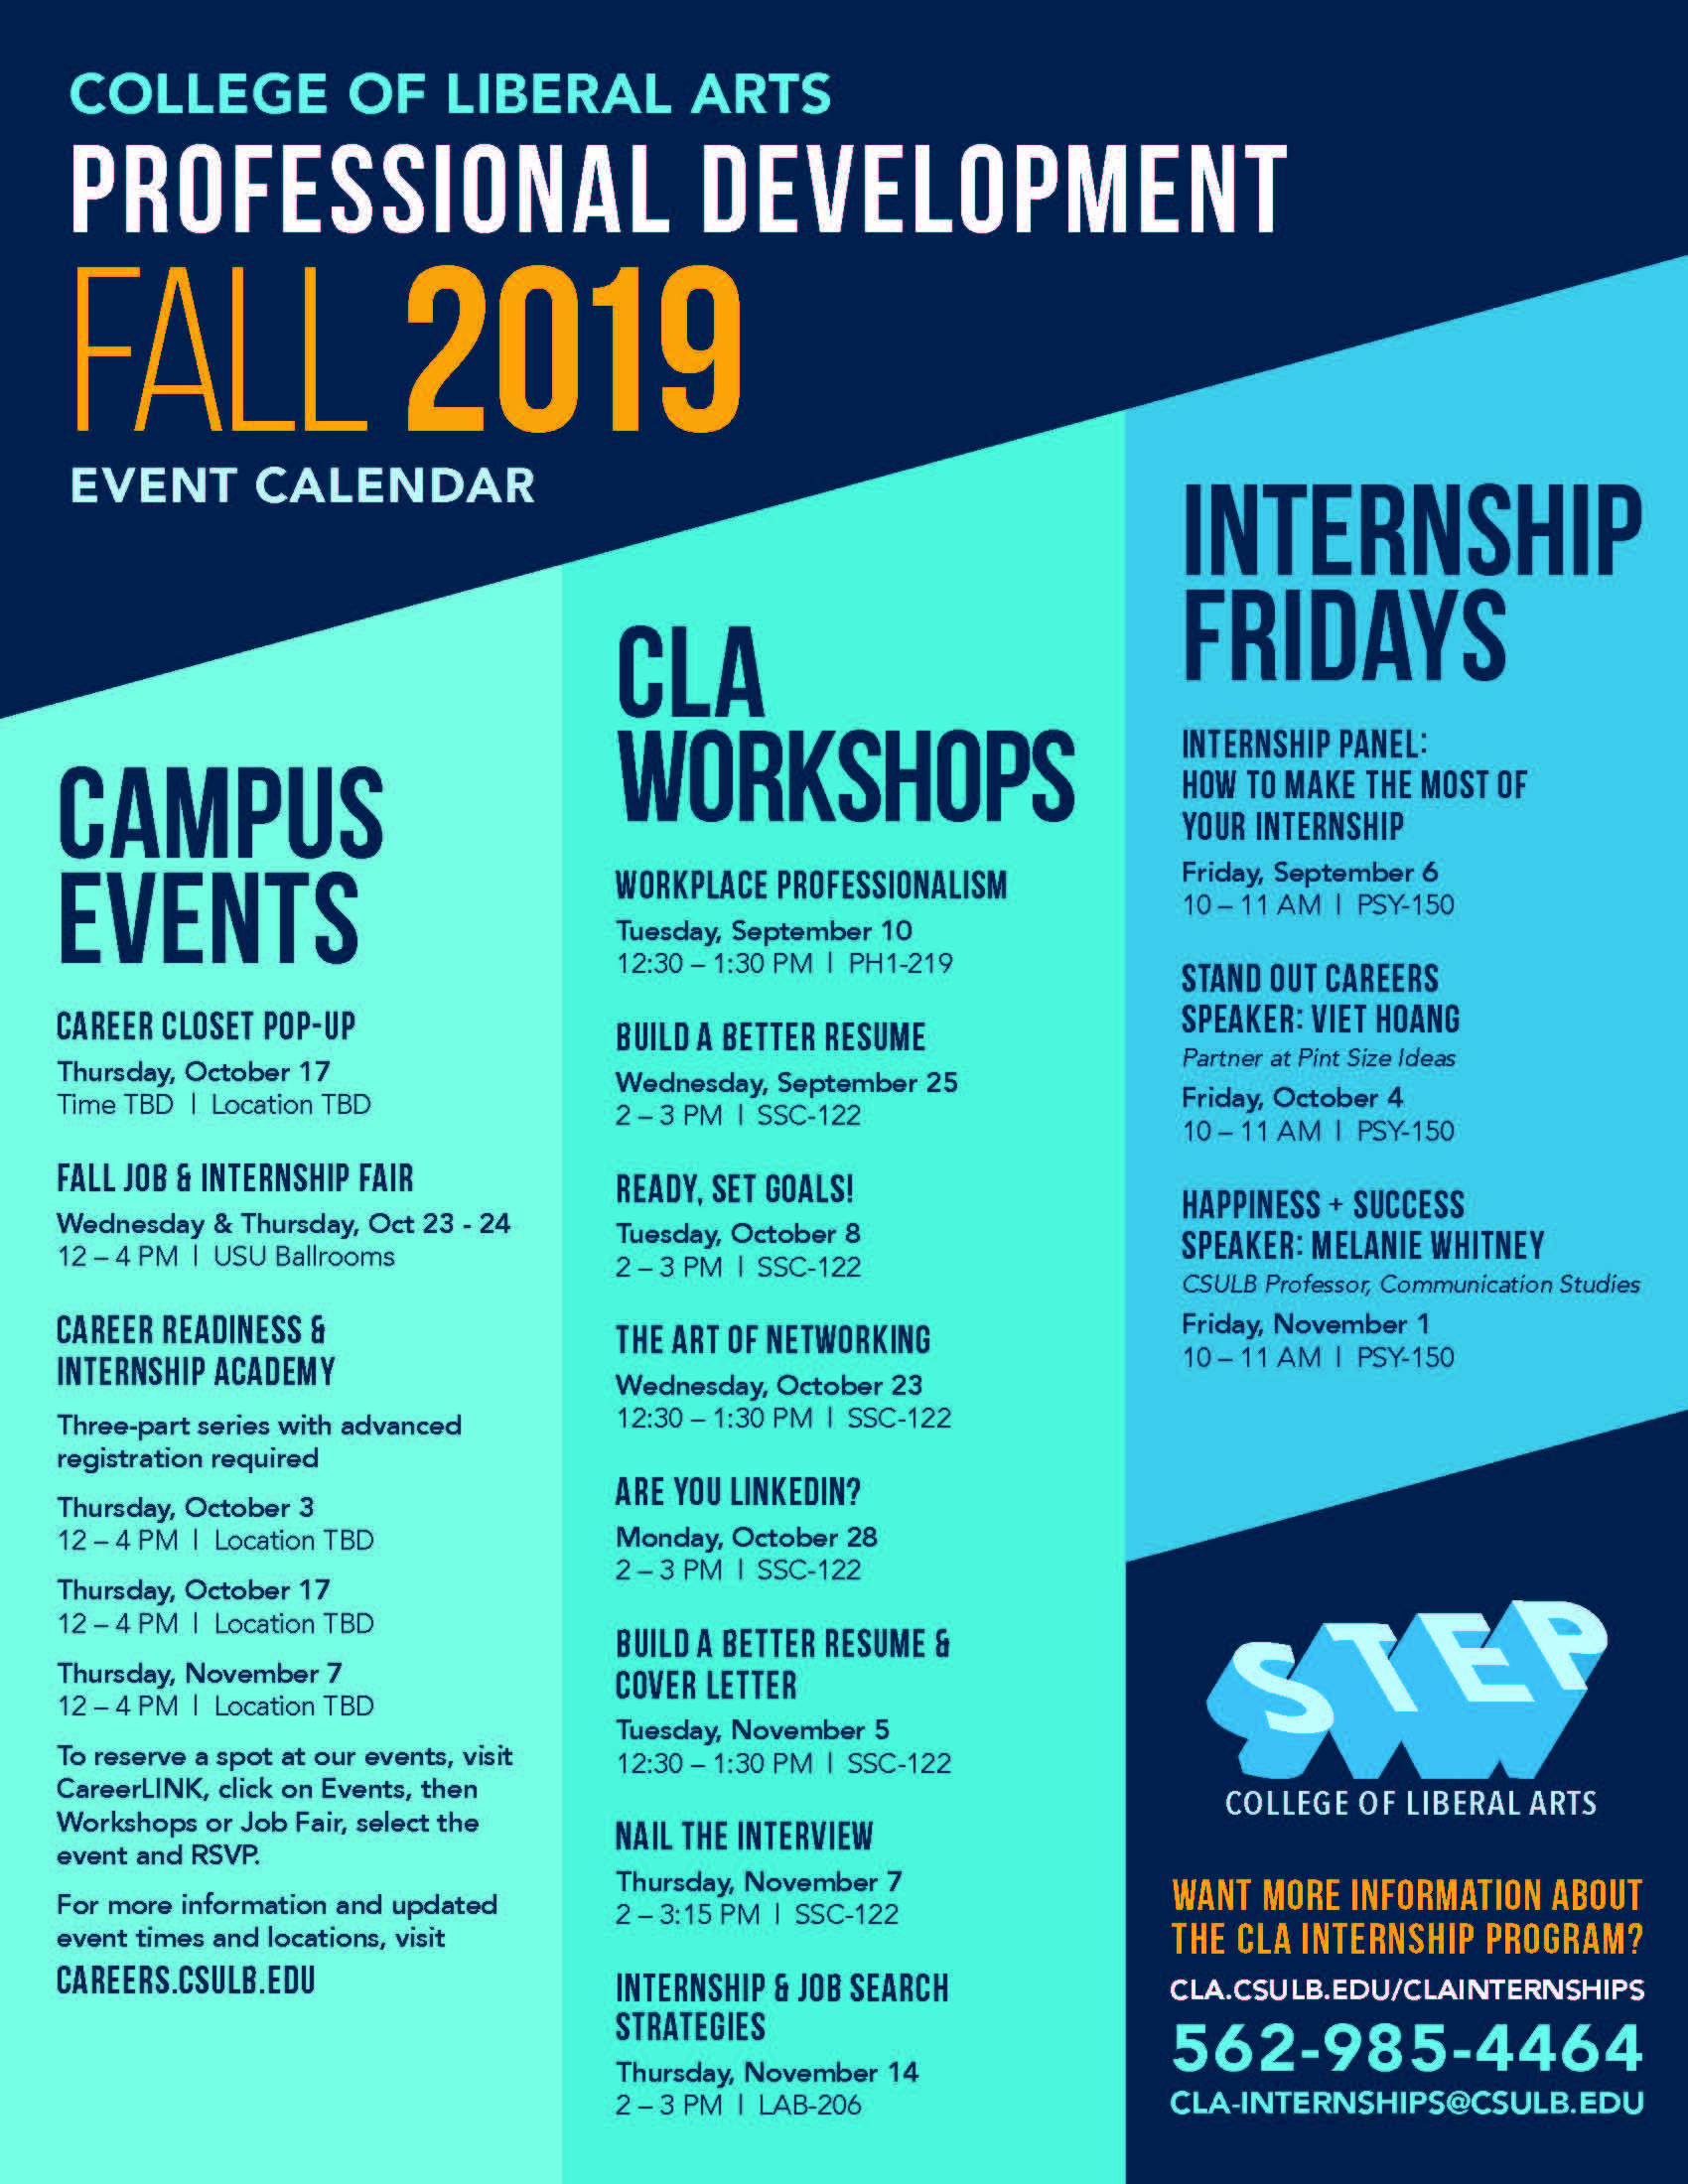 CLA Professional Development Workshops